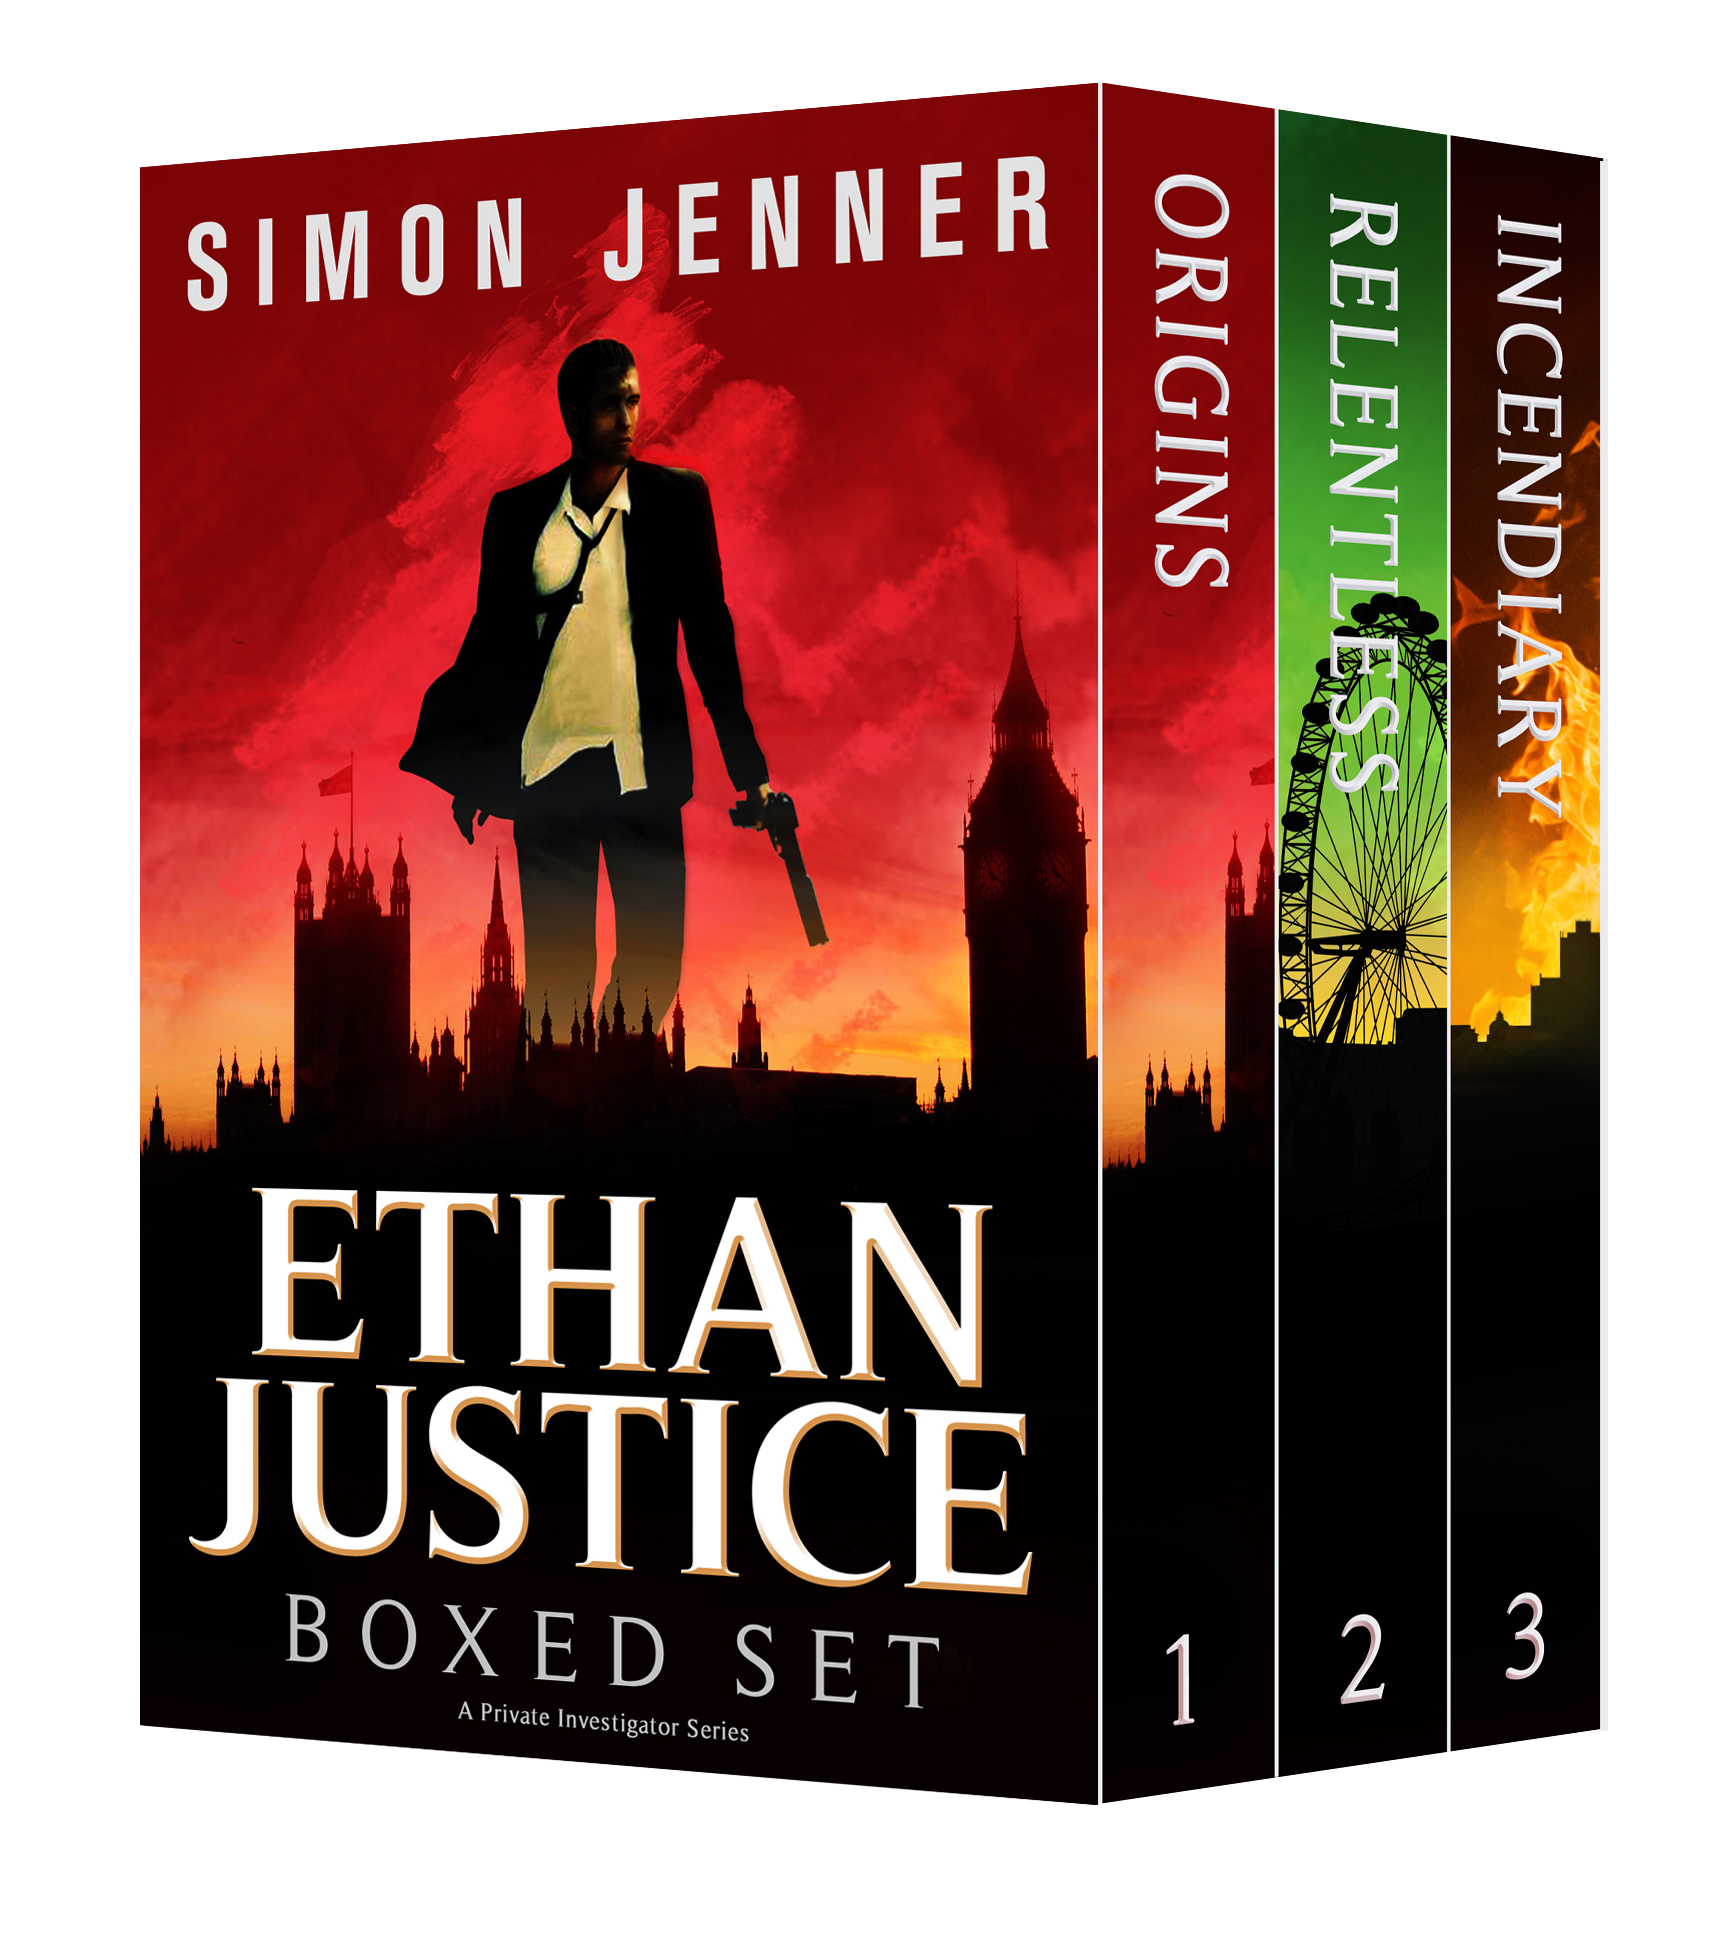 Ethan Justice Boxed Set